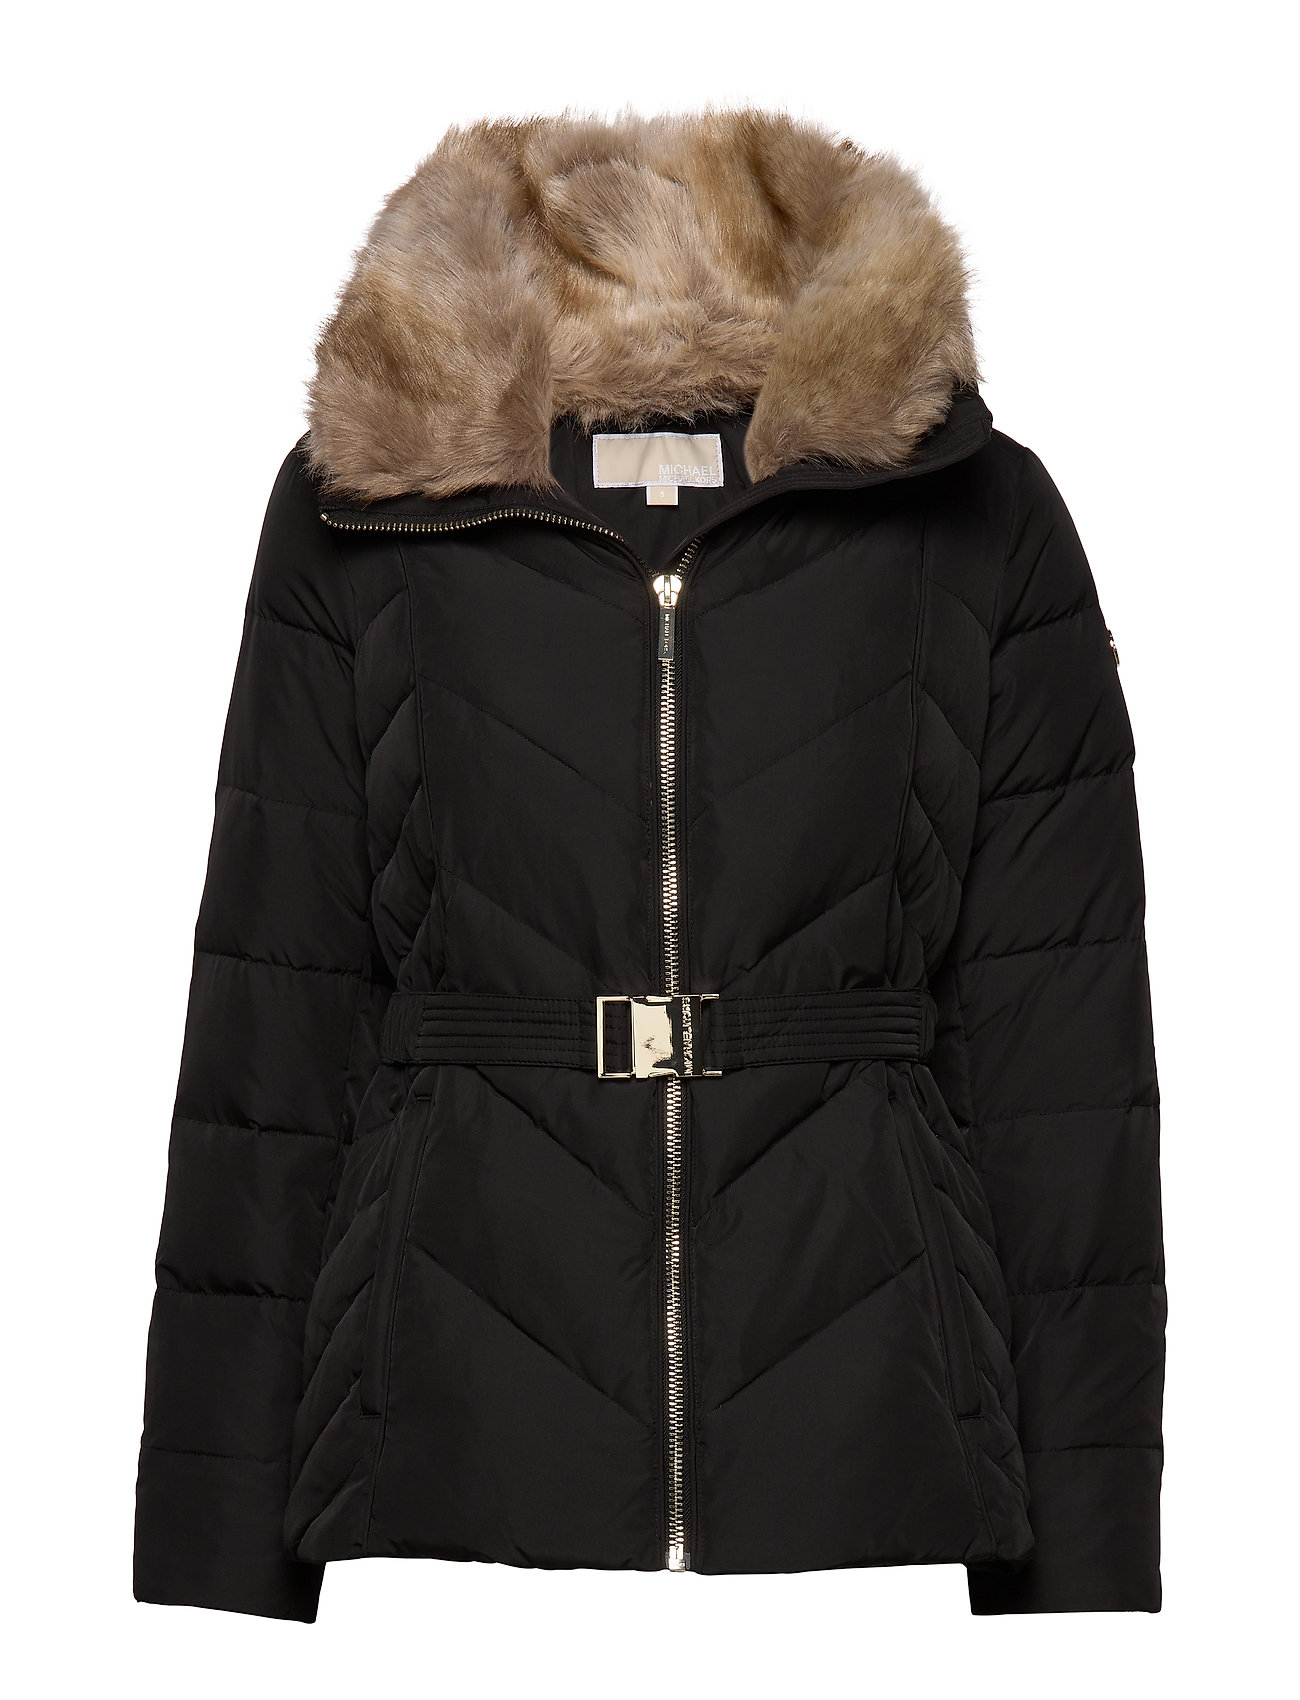 Michael Kors FITTED HEAVYDOWN PUFFER - BLACK